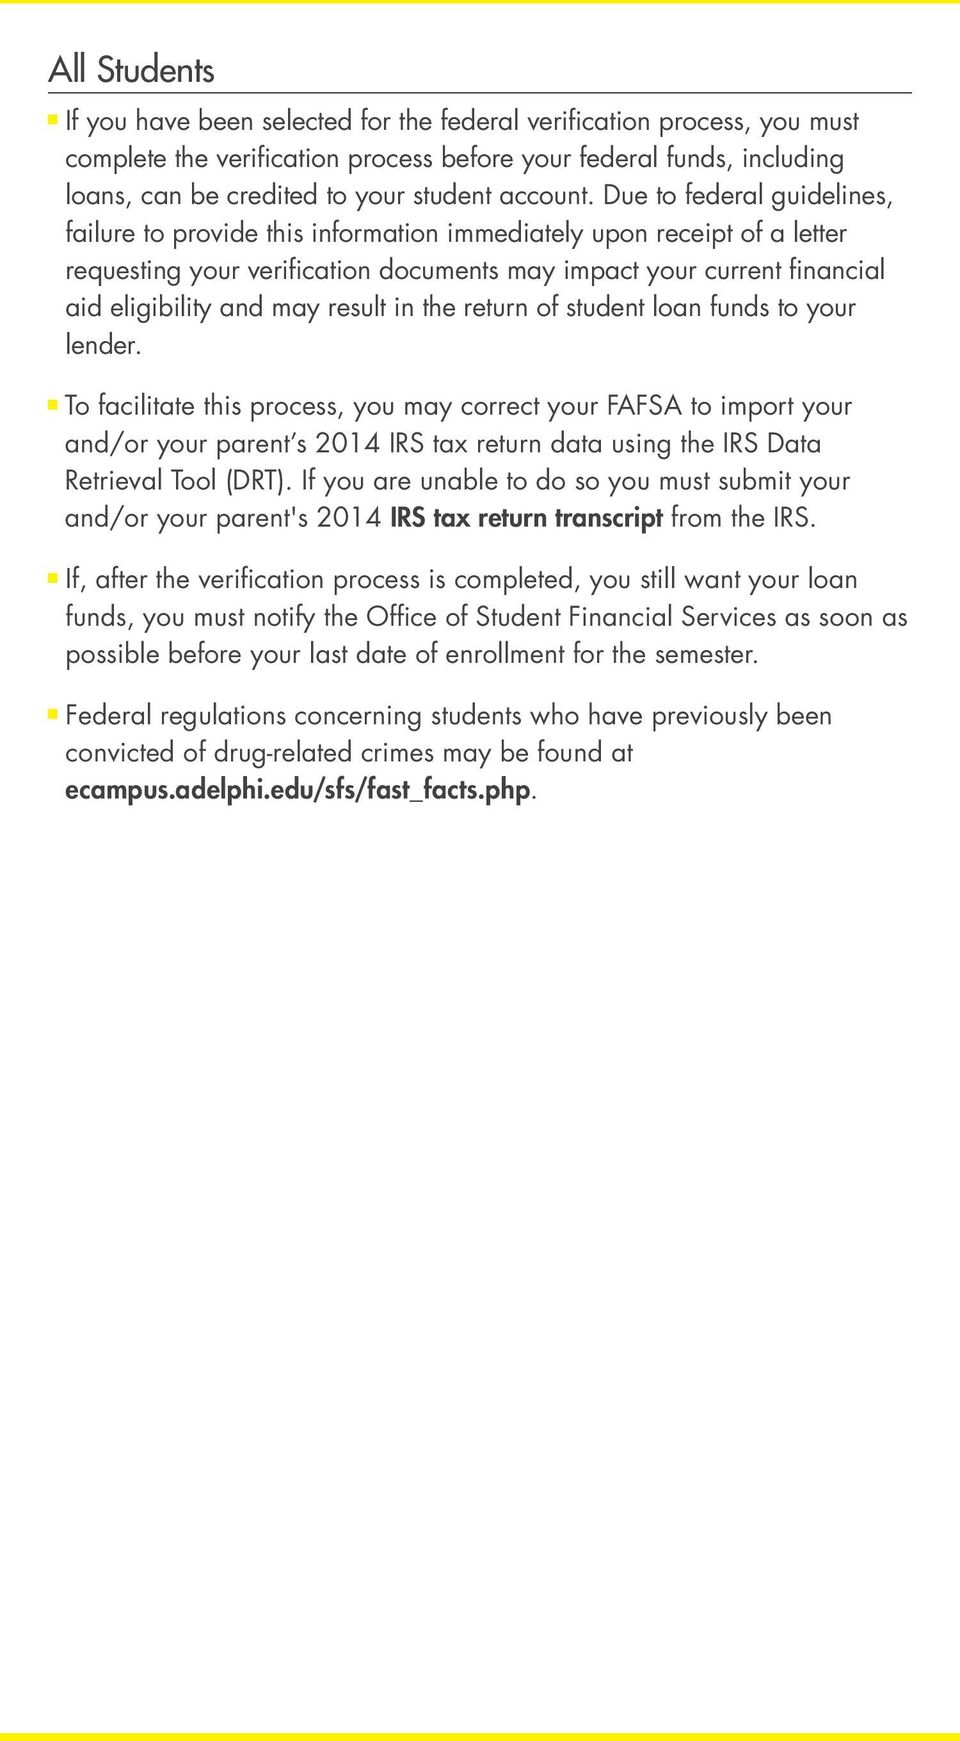 Due to federal guidelines, failure to provide this information immediately upon receipt of a letter requesting your verification documents may impact your current financial aid eligibility and may